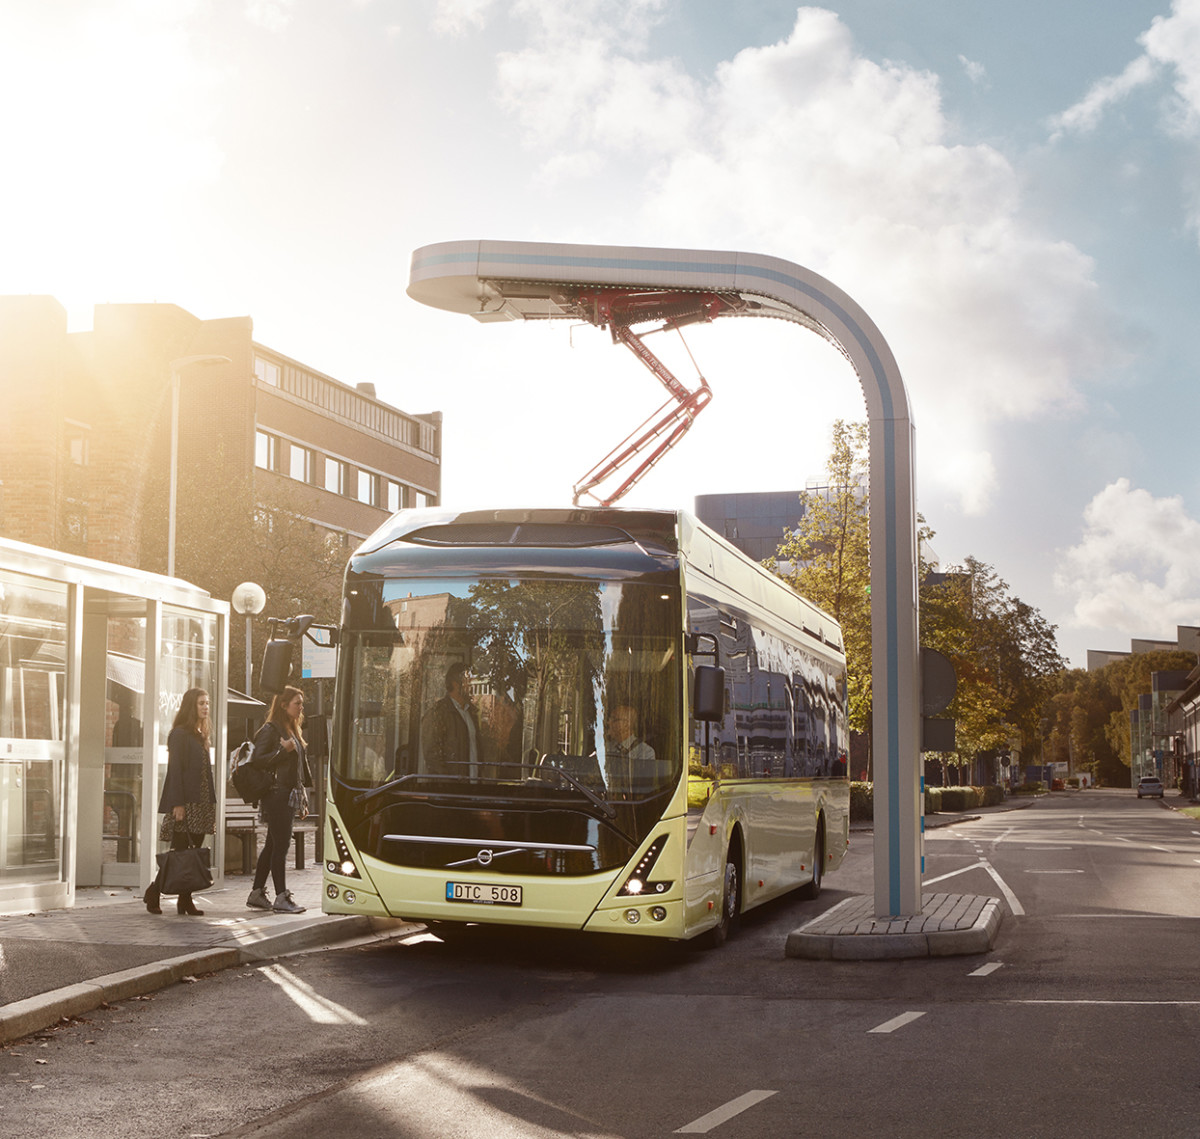 The study will assess if electric charging technology used on Volvo electric buses could be used on the water.